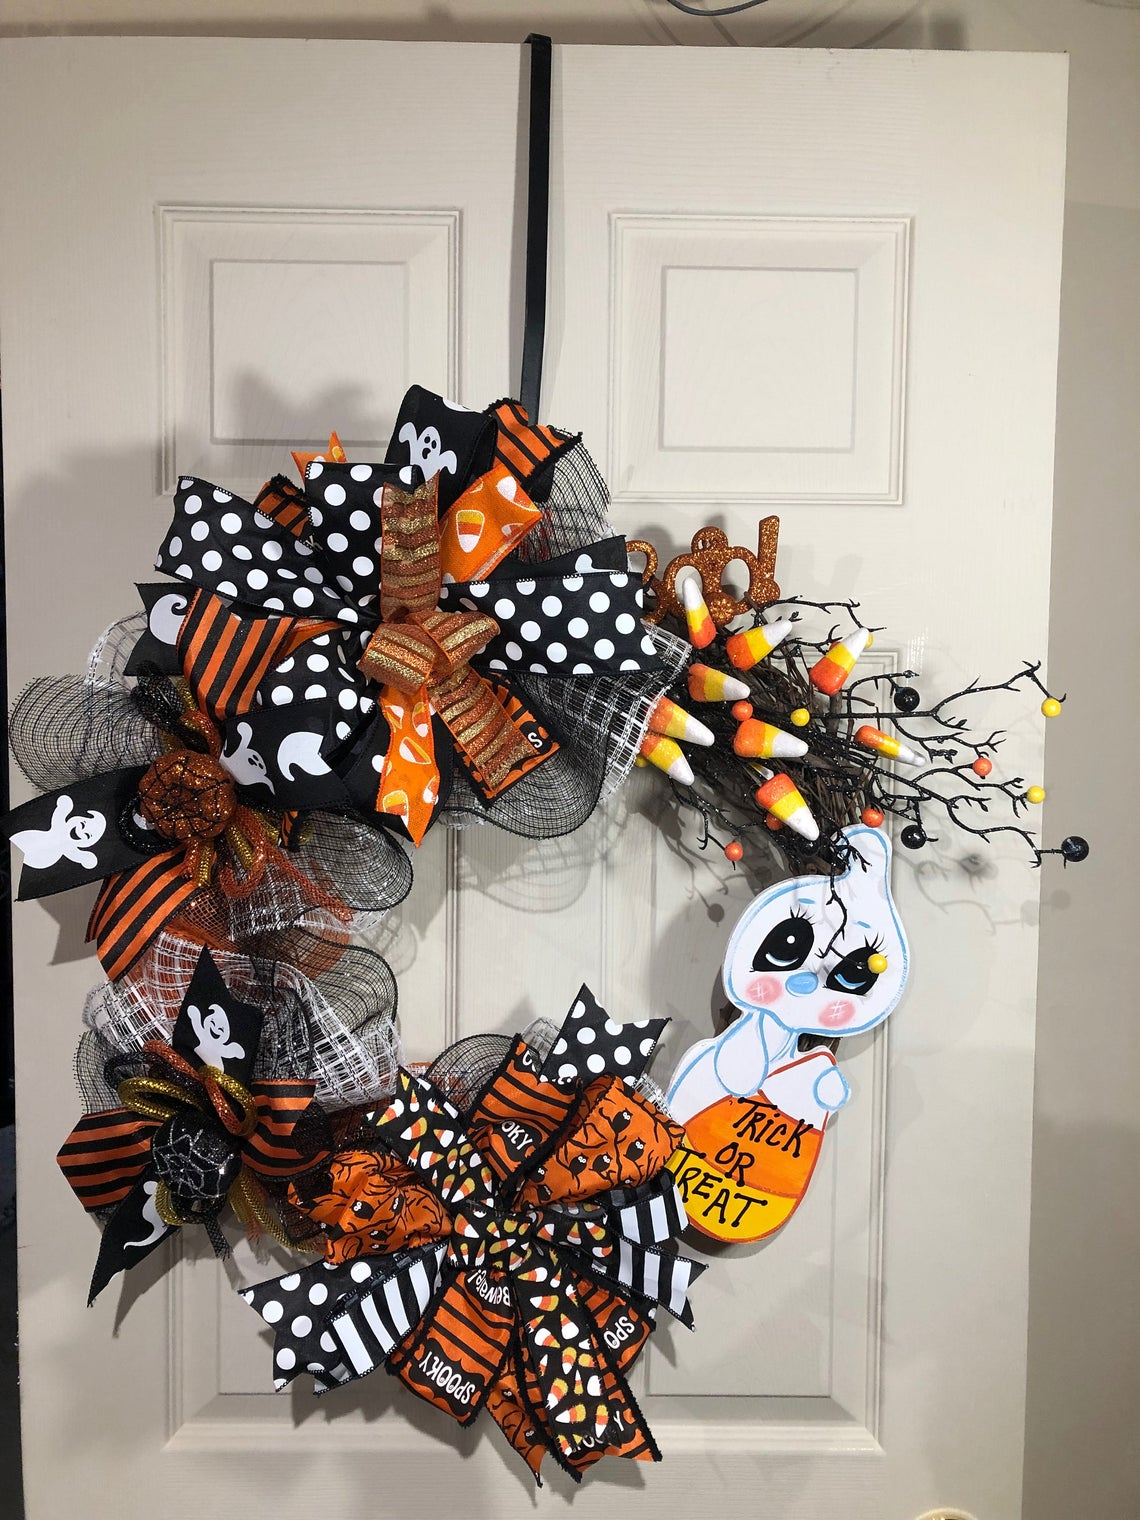 Decorative Front Door Halloween Decorations Unique Ideas Decorating Ideas And Accessories For The Home Creative Ideas For Every Room